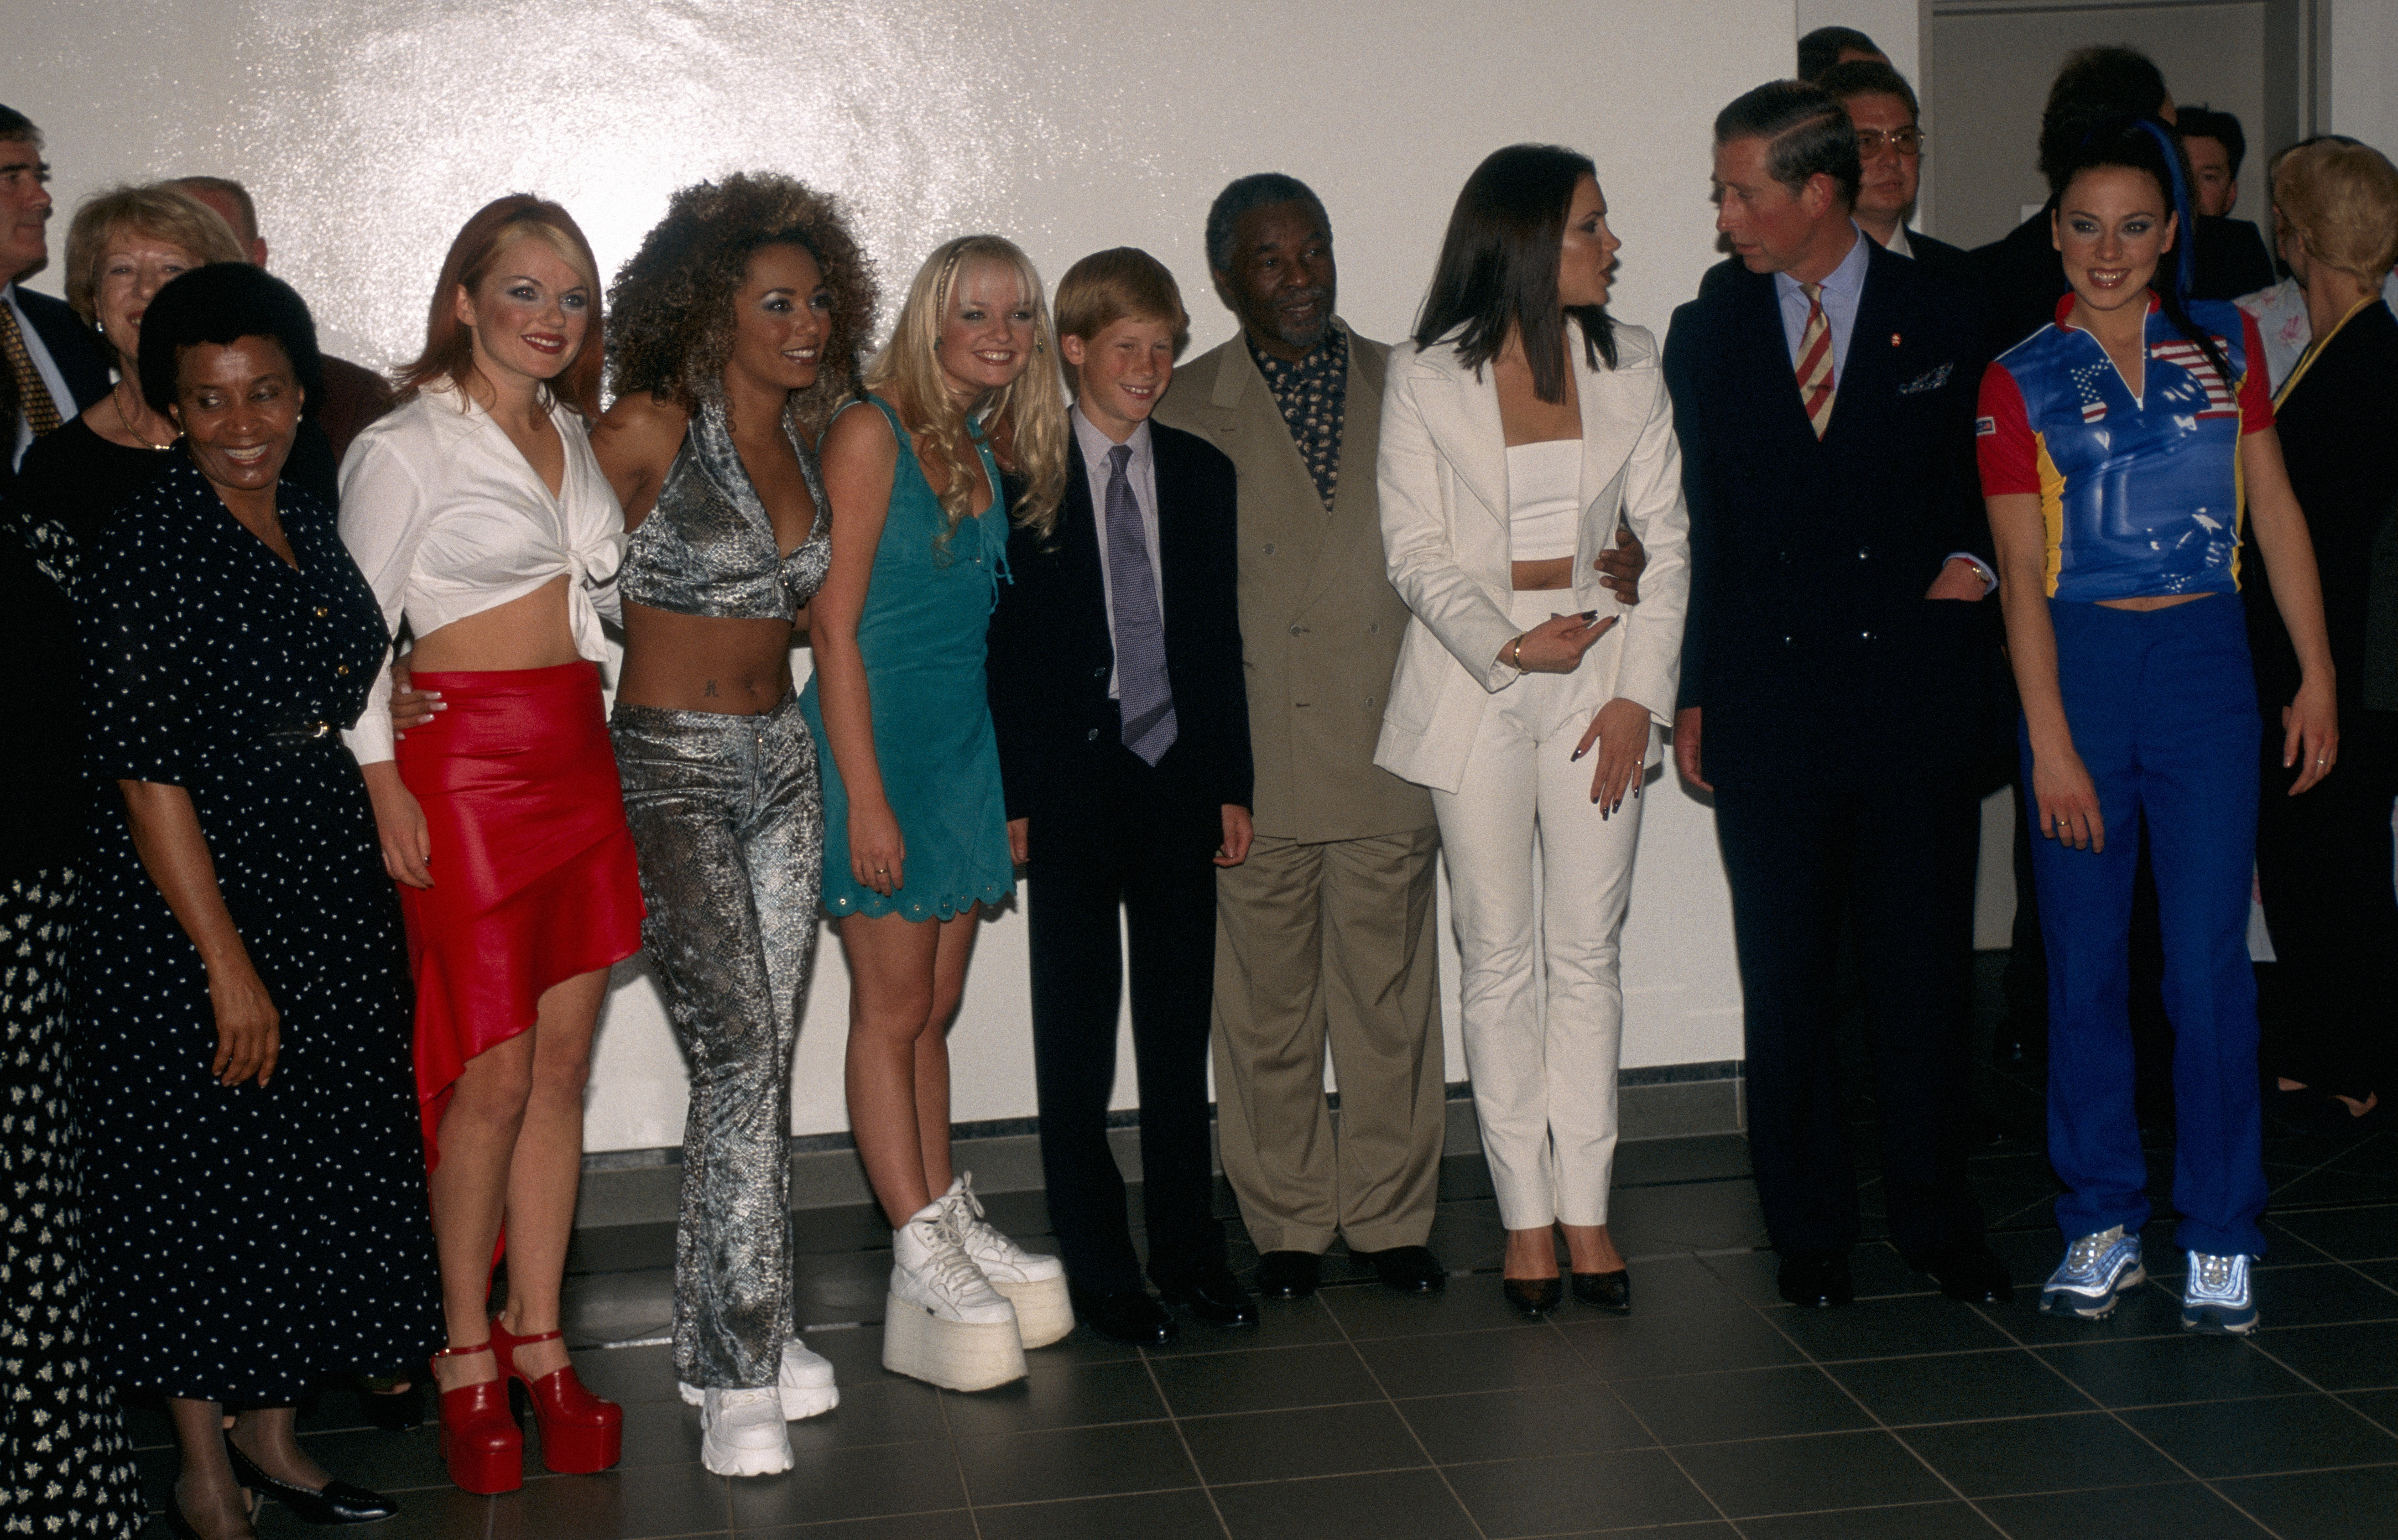 Spice Girls with Prince Charles and Prince Harry in the concert in Johannesburg, South Africa on November 01, 1997.